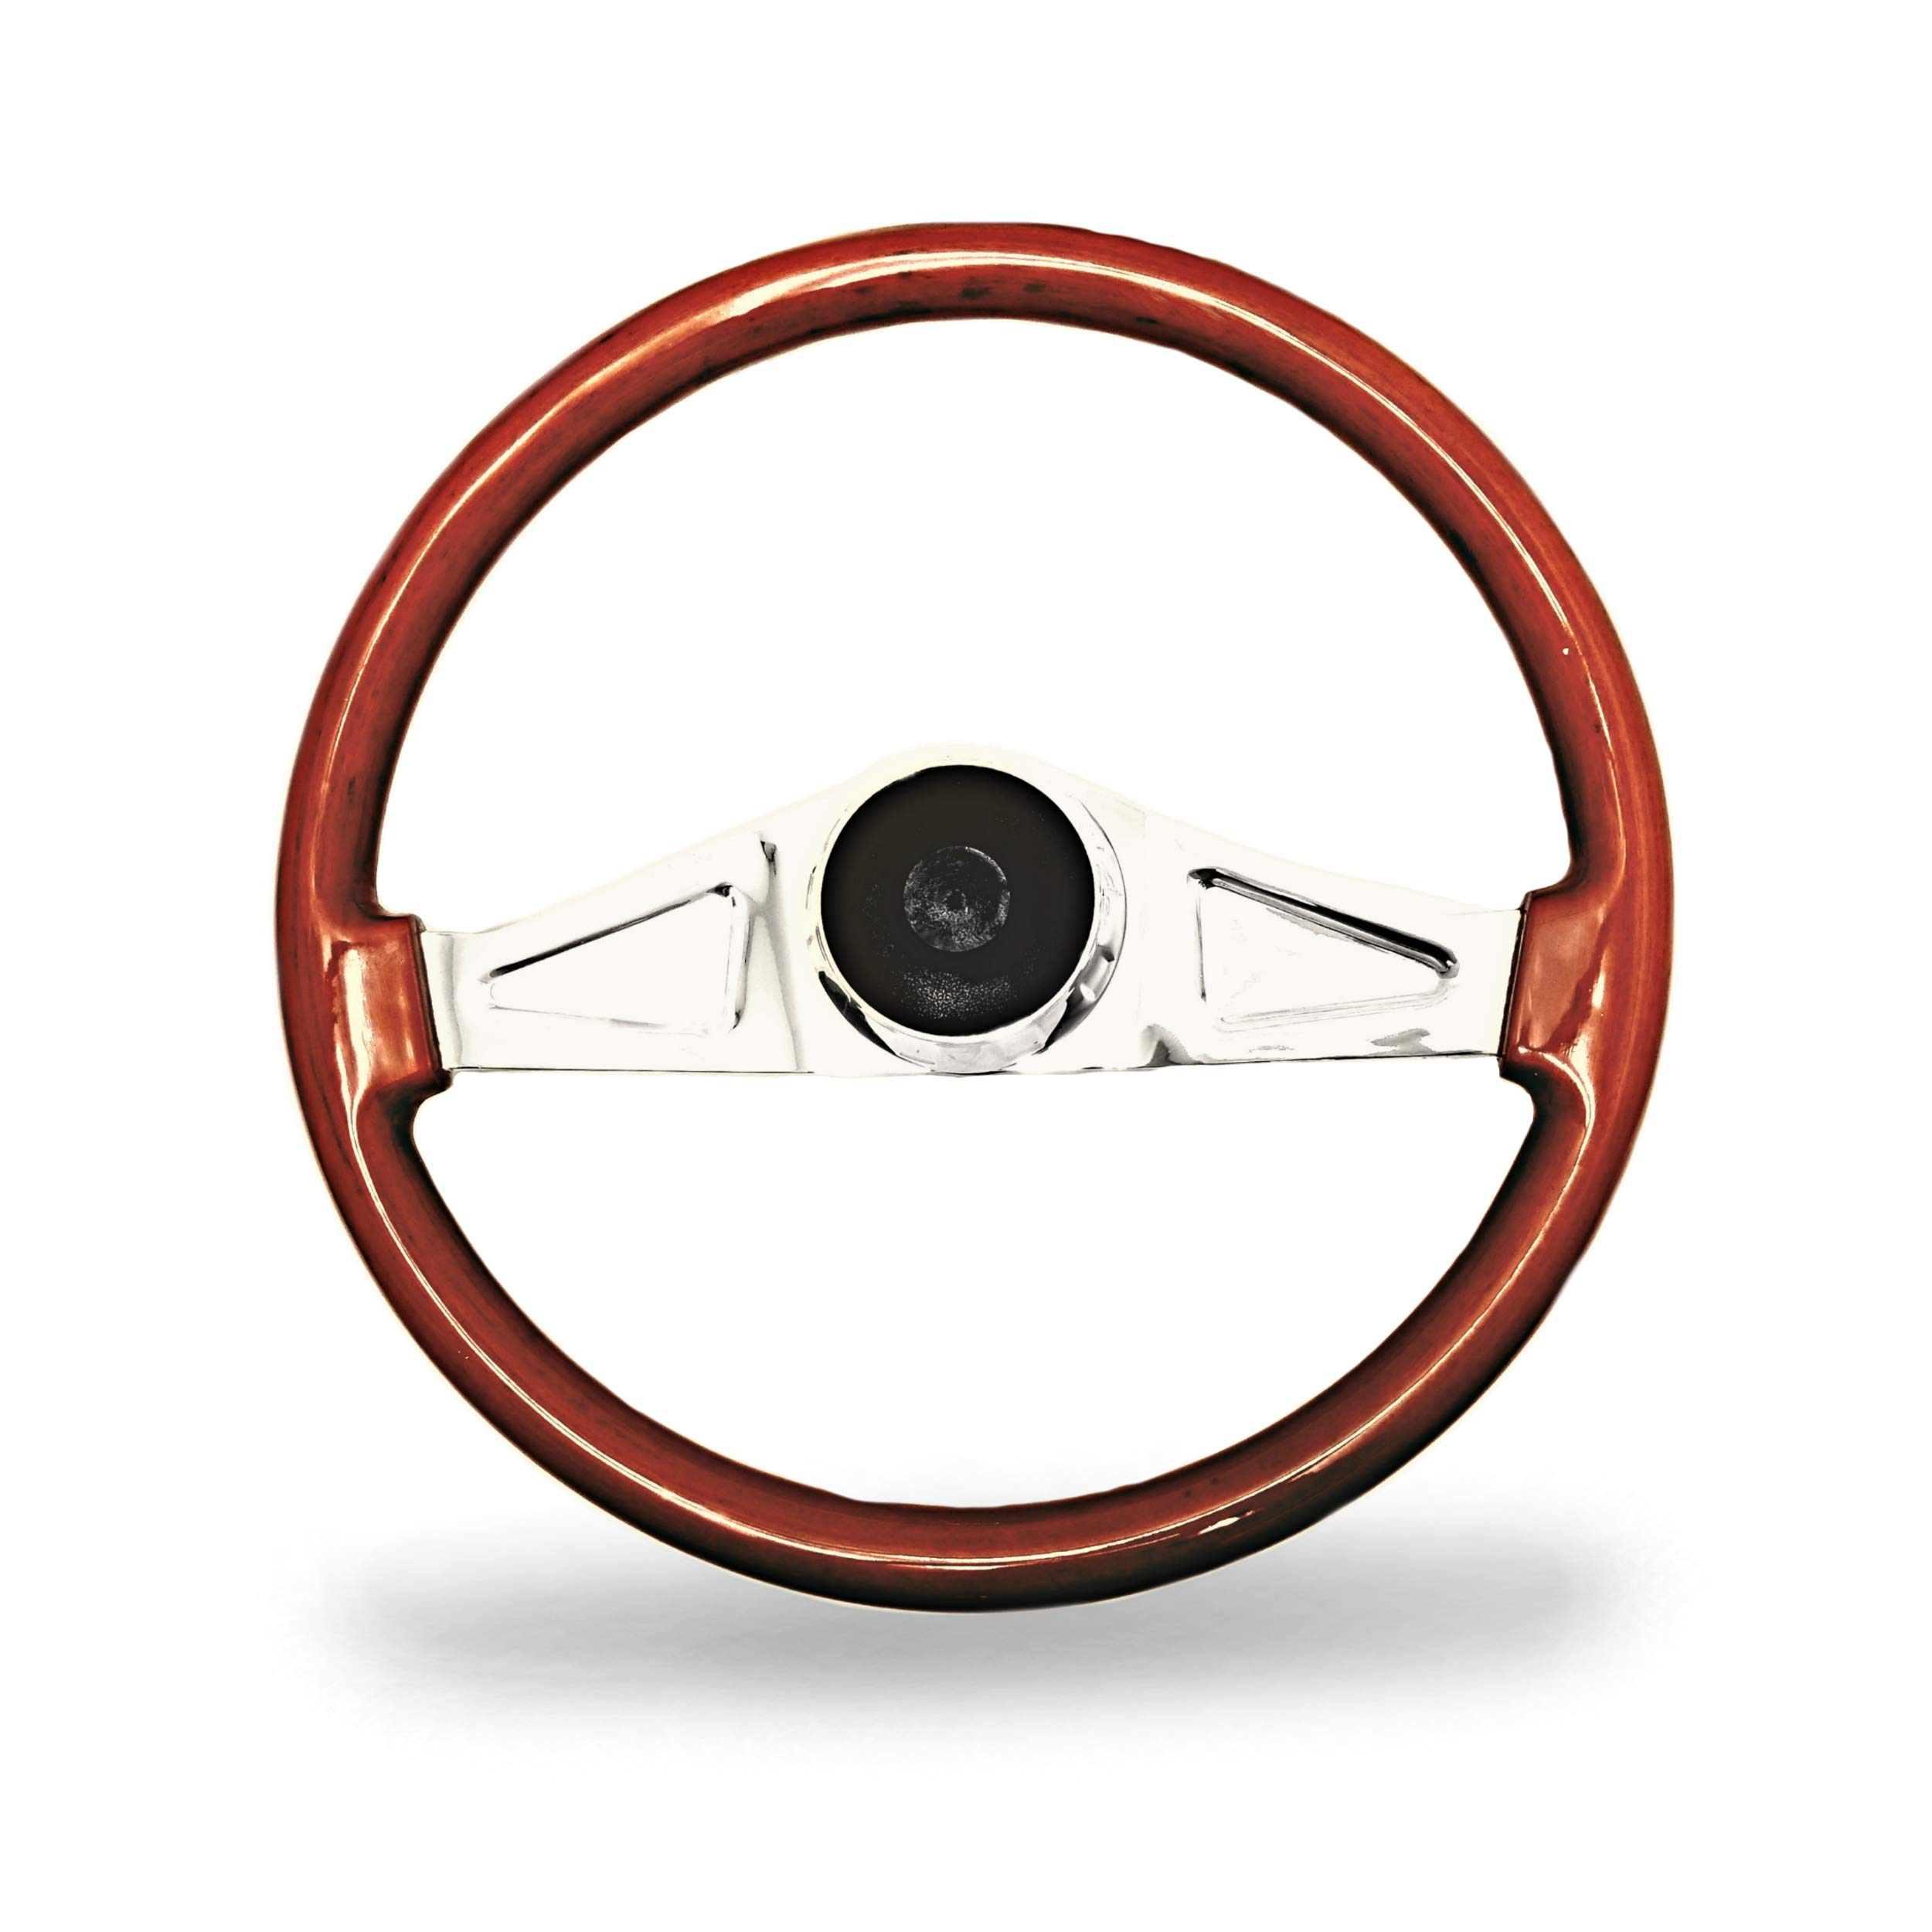 Woody's WP-SWKW9701.2 Rosewood Chrome Truck Steering Wheel (Beautiful African Hardwood) by Woody's